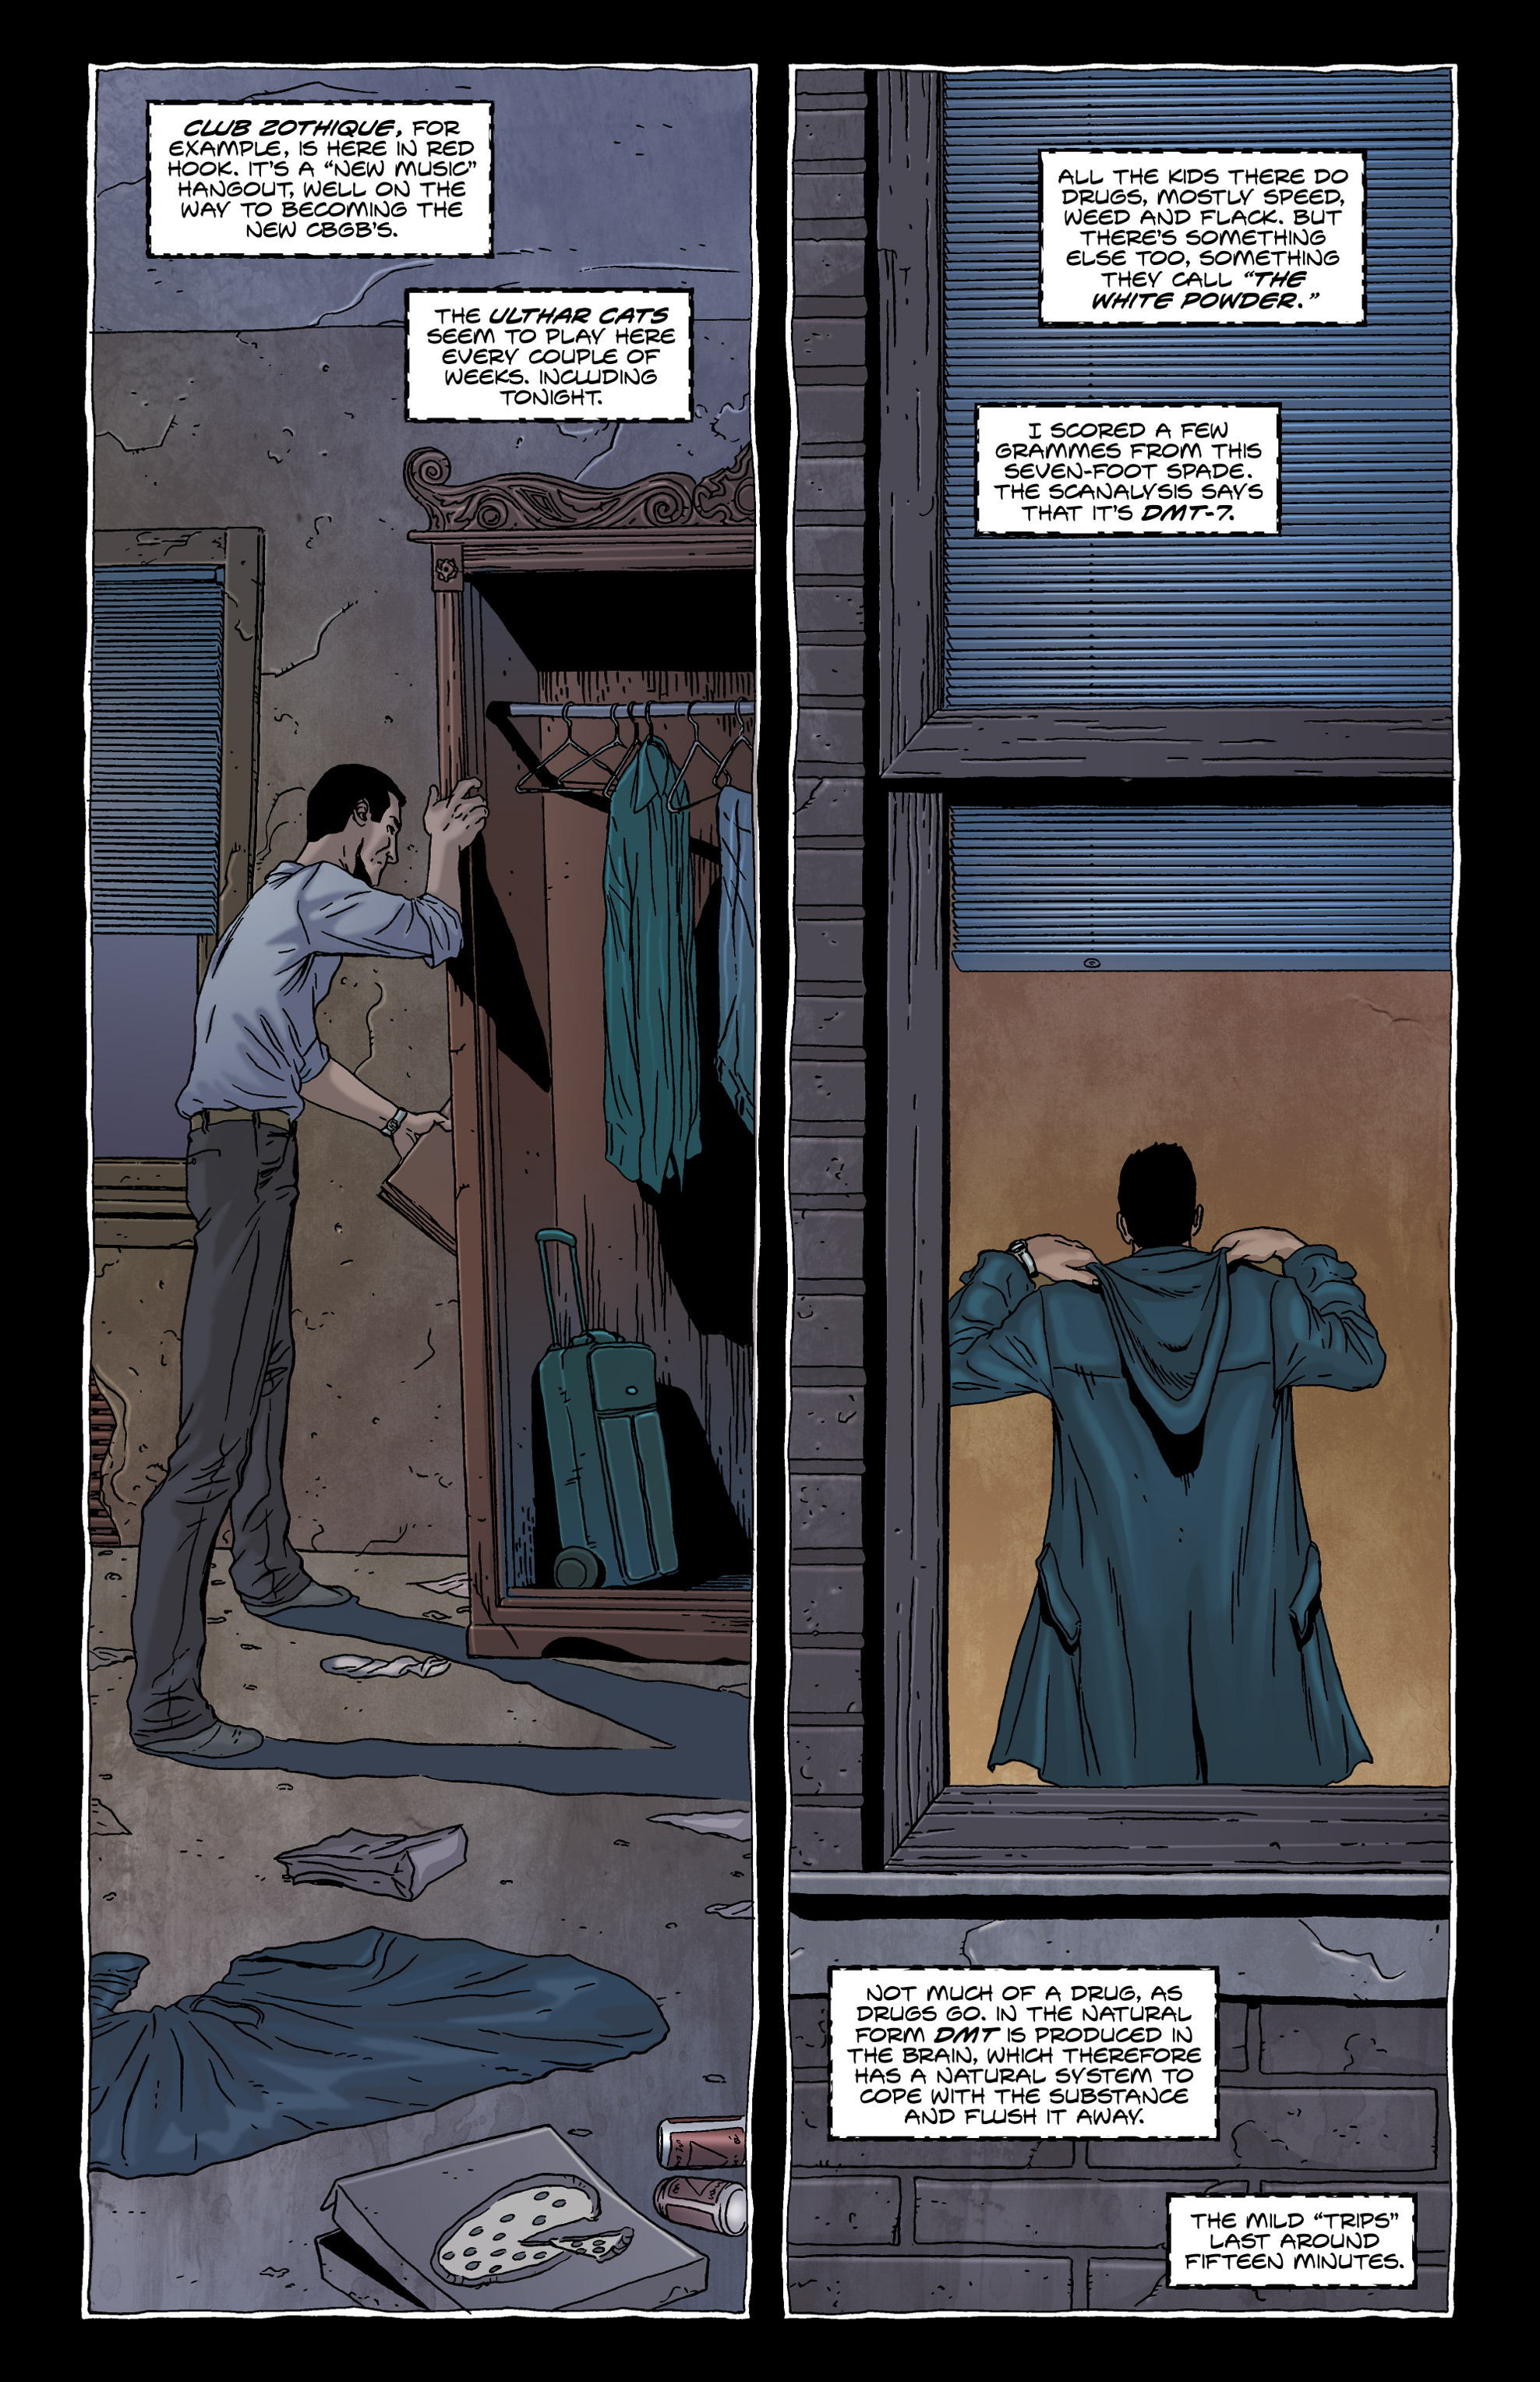 Read online Alan Moore's The Courtyard comic -  Issue # TPB - 17